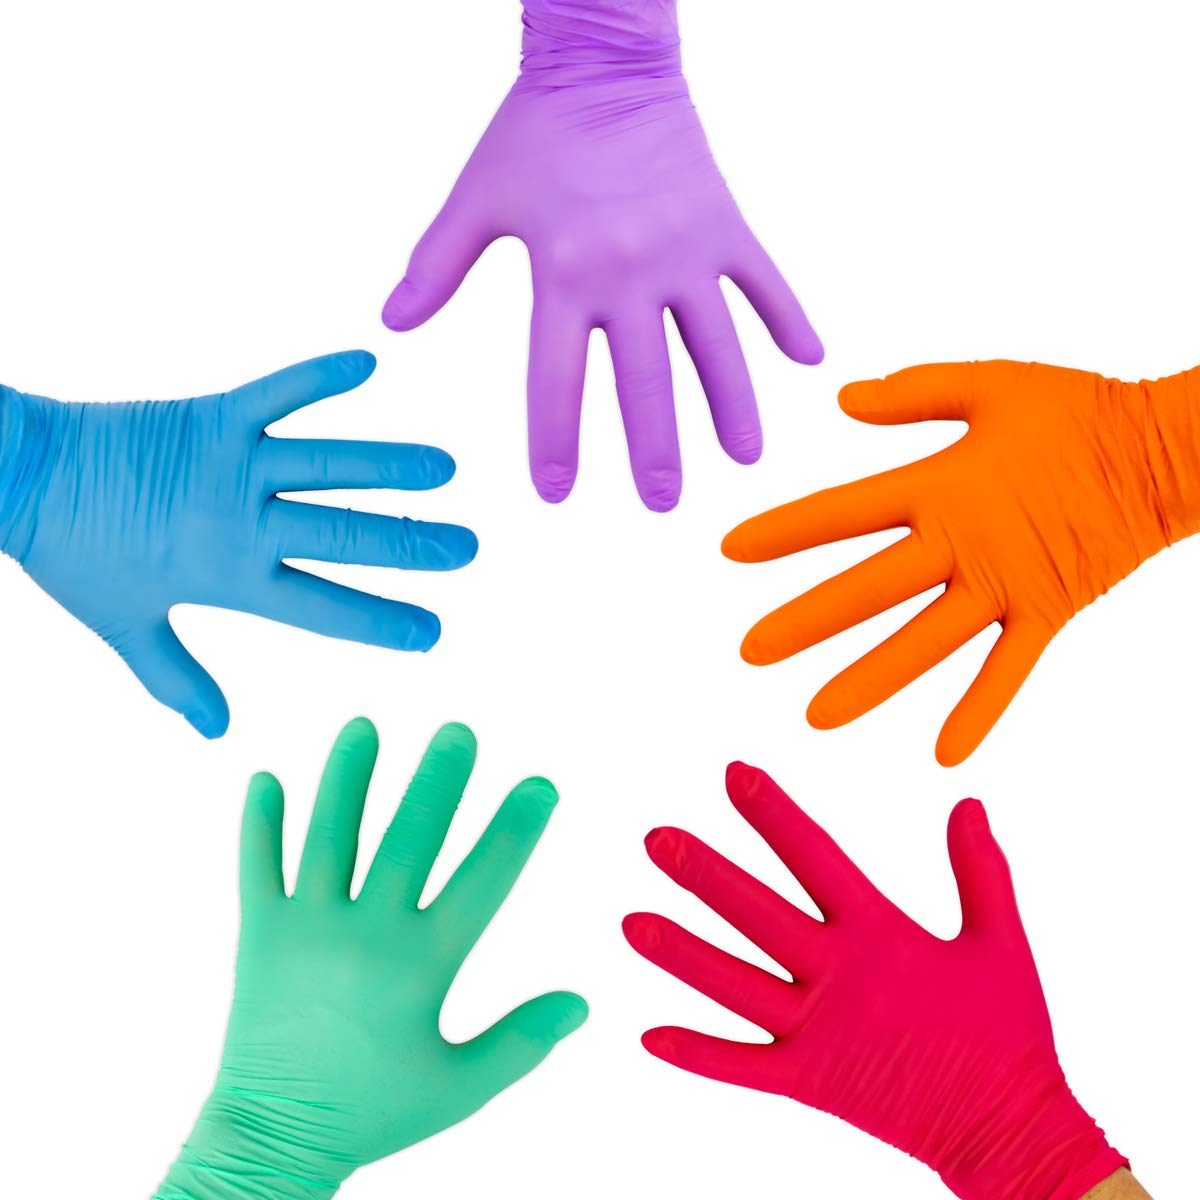 Disposable Gloves For Kids Hygloss Child Craft Gloves- Latex 12-Pk Colorful